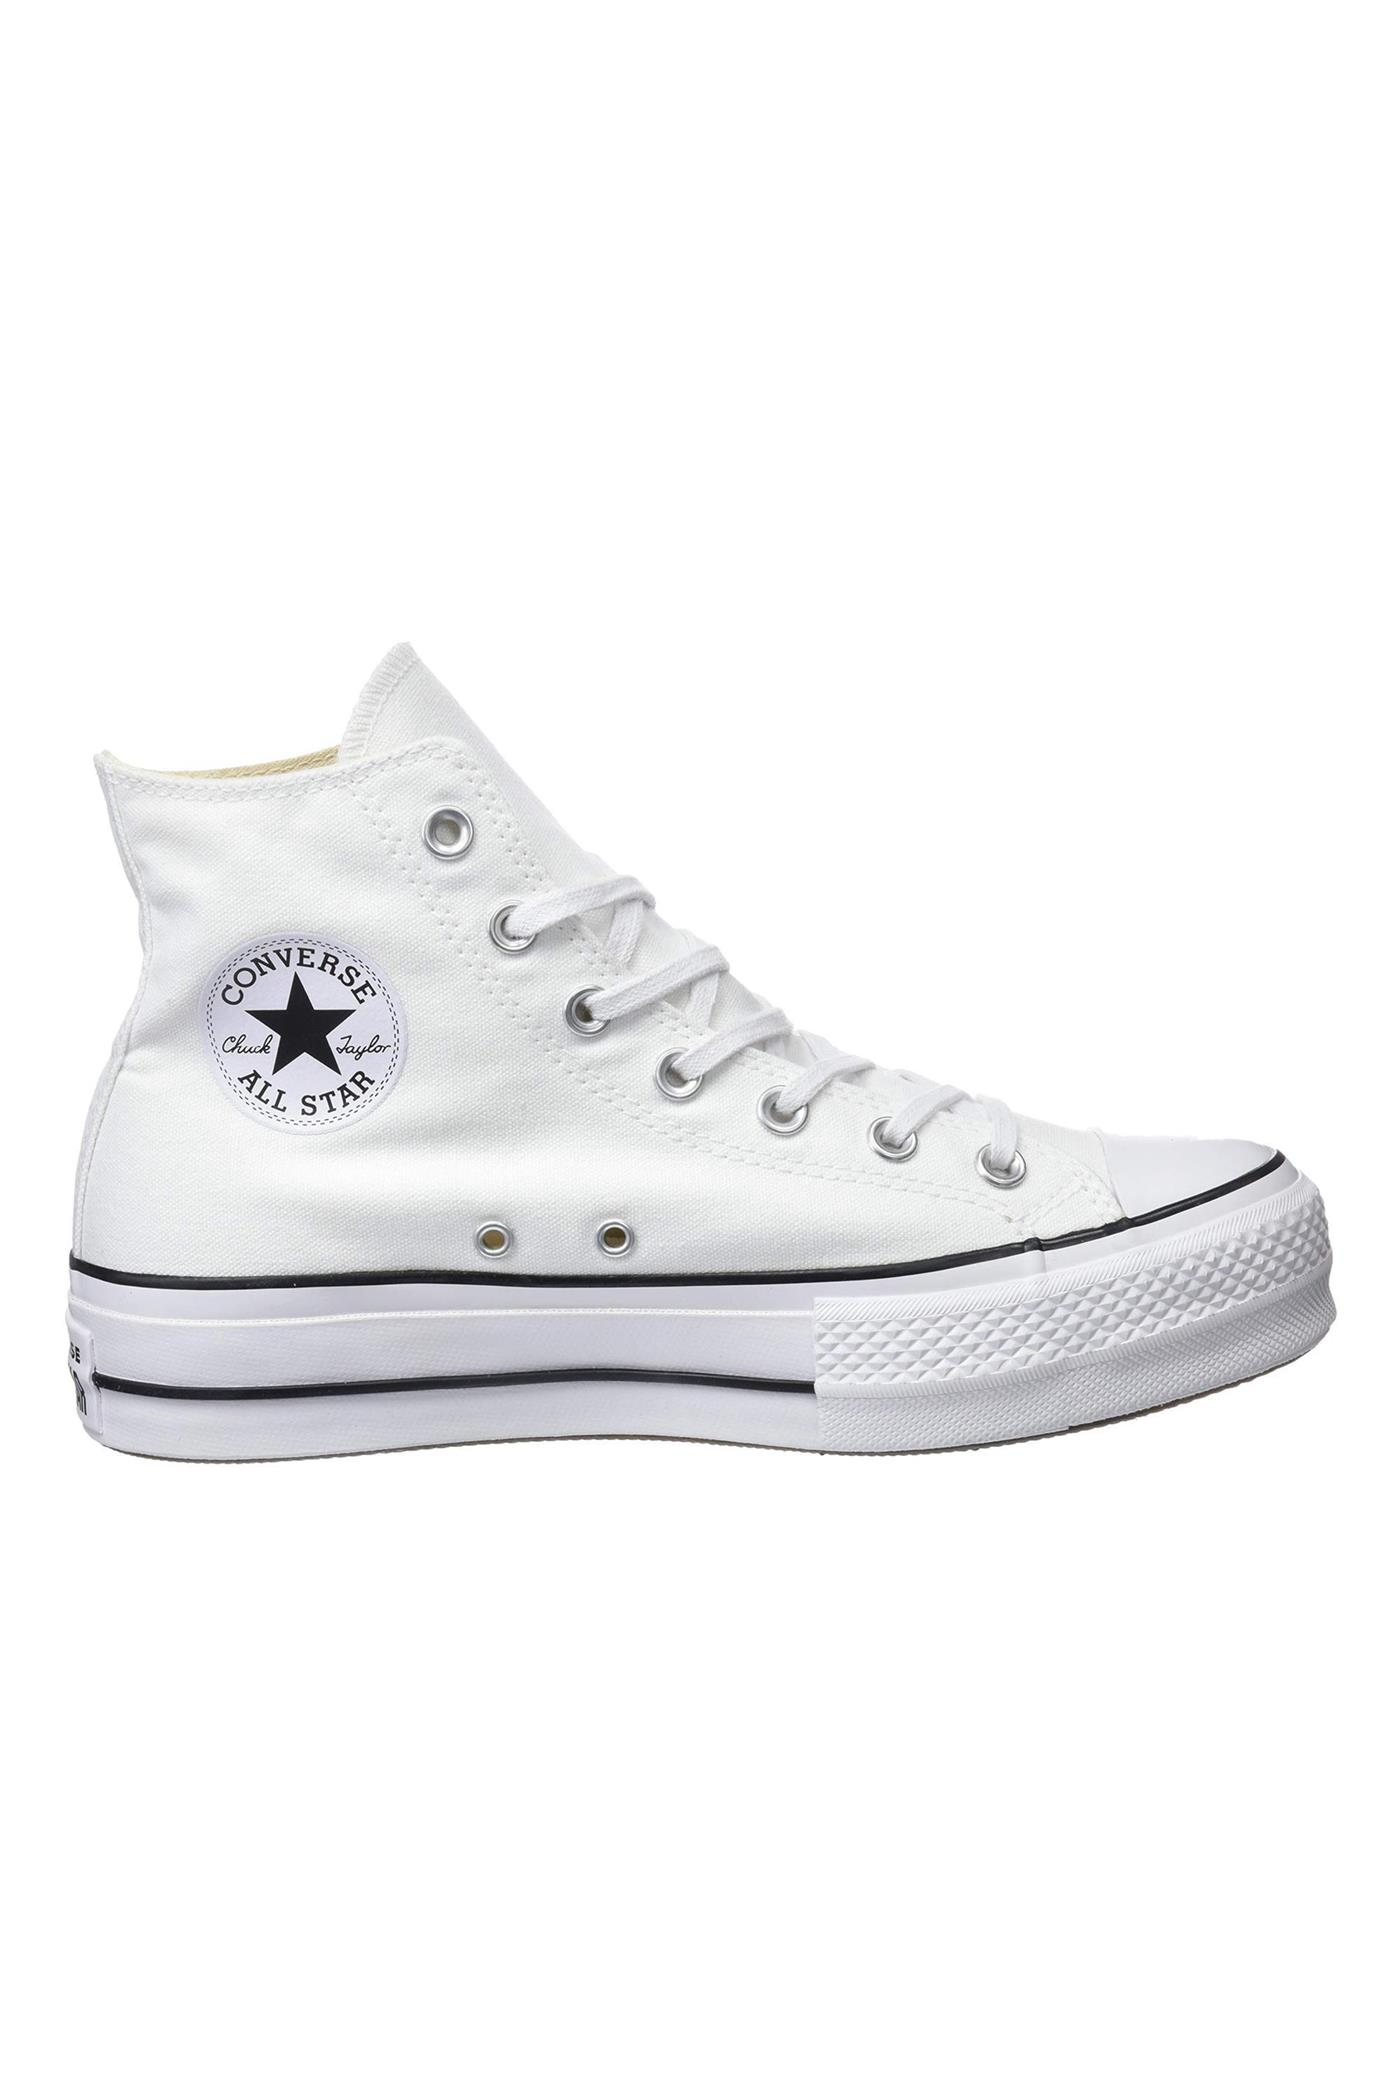 converse leather blancas plataforma